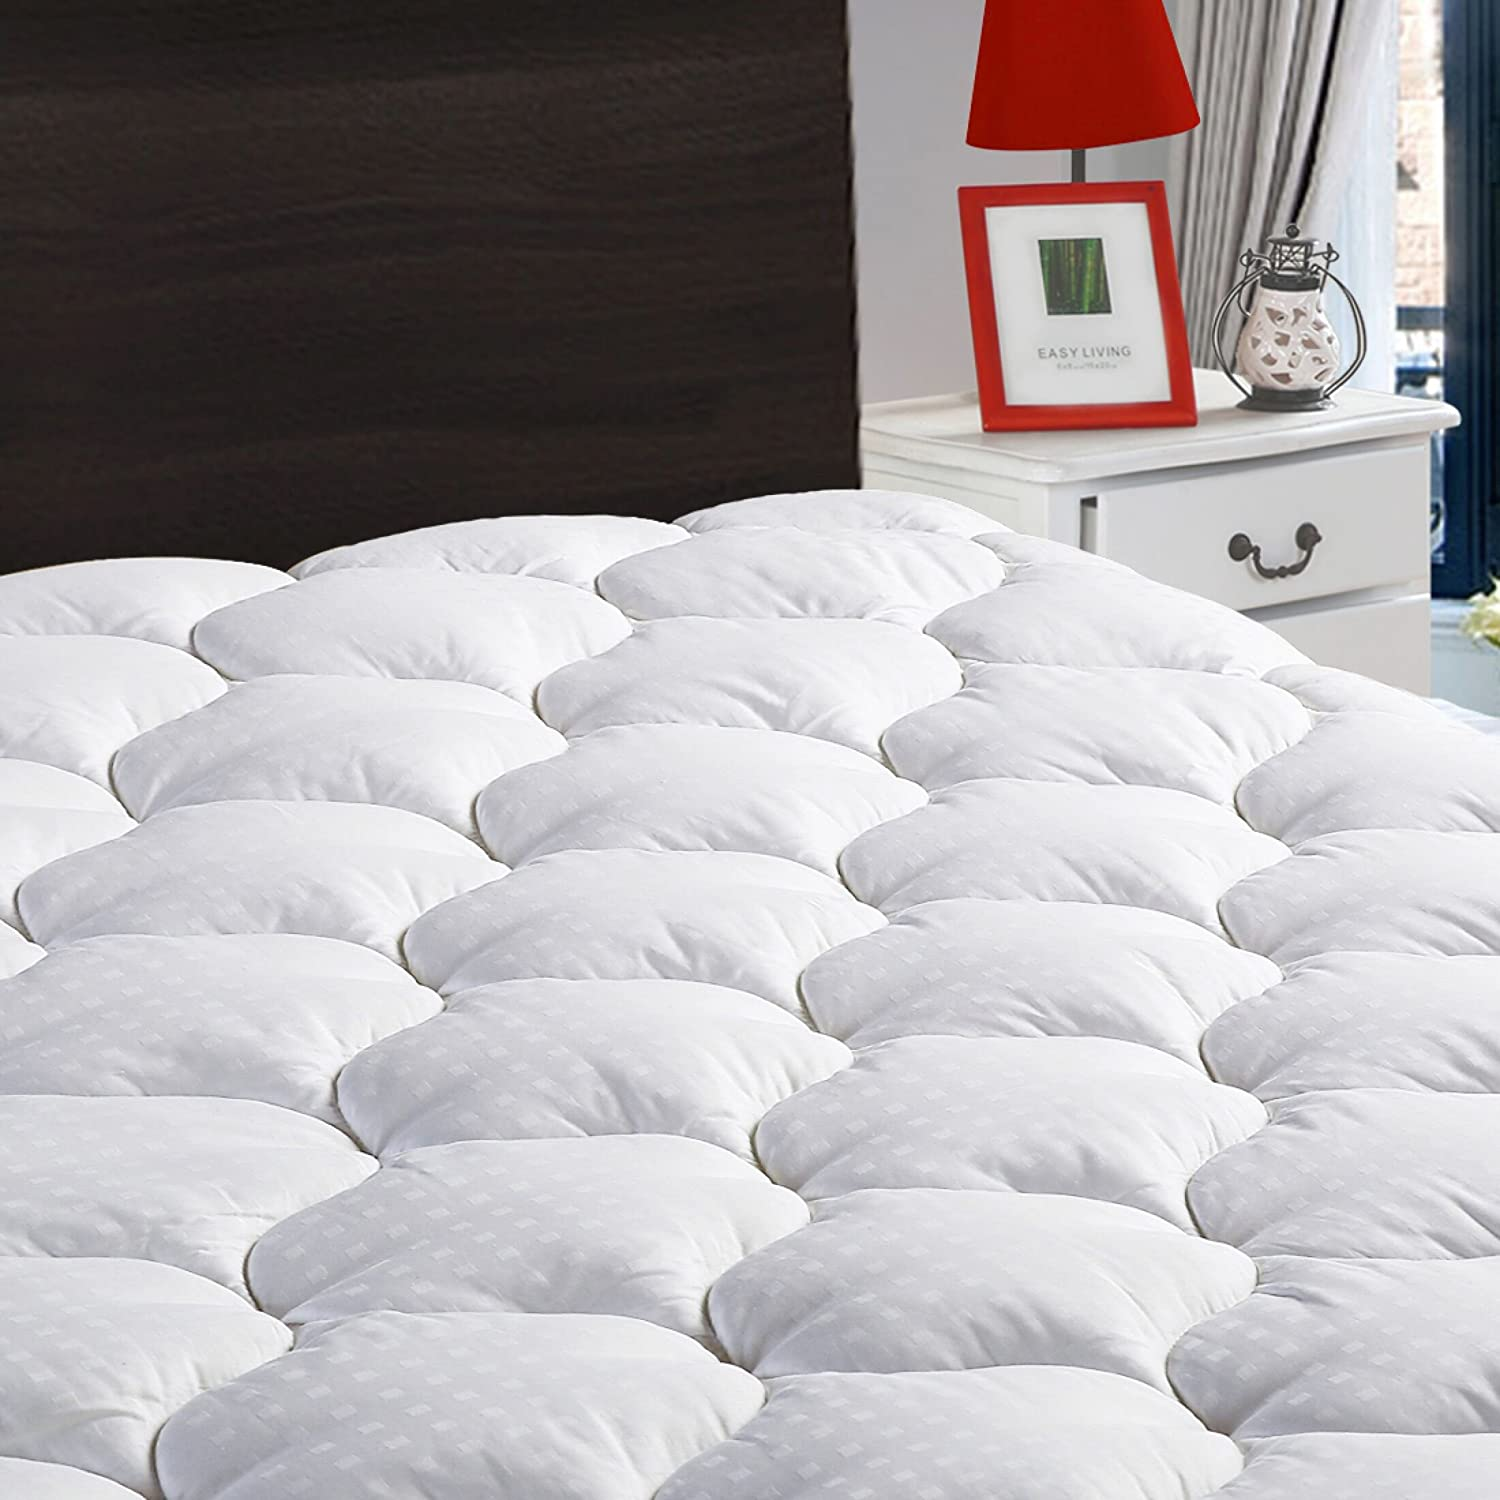 Amazon.com: LEISURE TOWN Olympic Queen Overfilled Mattress Pad Cover Cooling Mattress Topper Pillow Top 8 21Deep Pocket Snow Down Alternative Fill (66